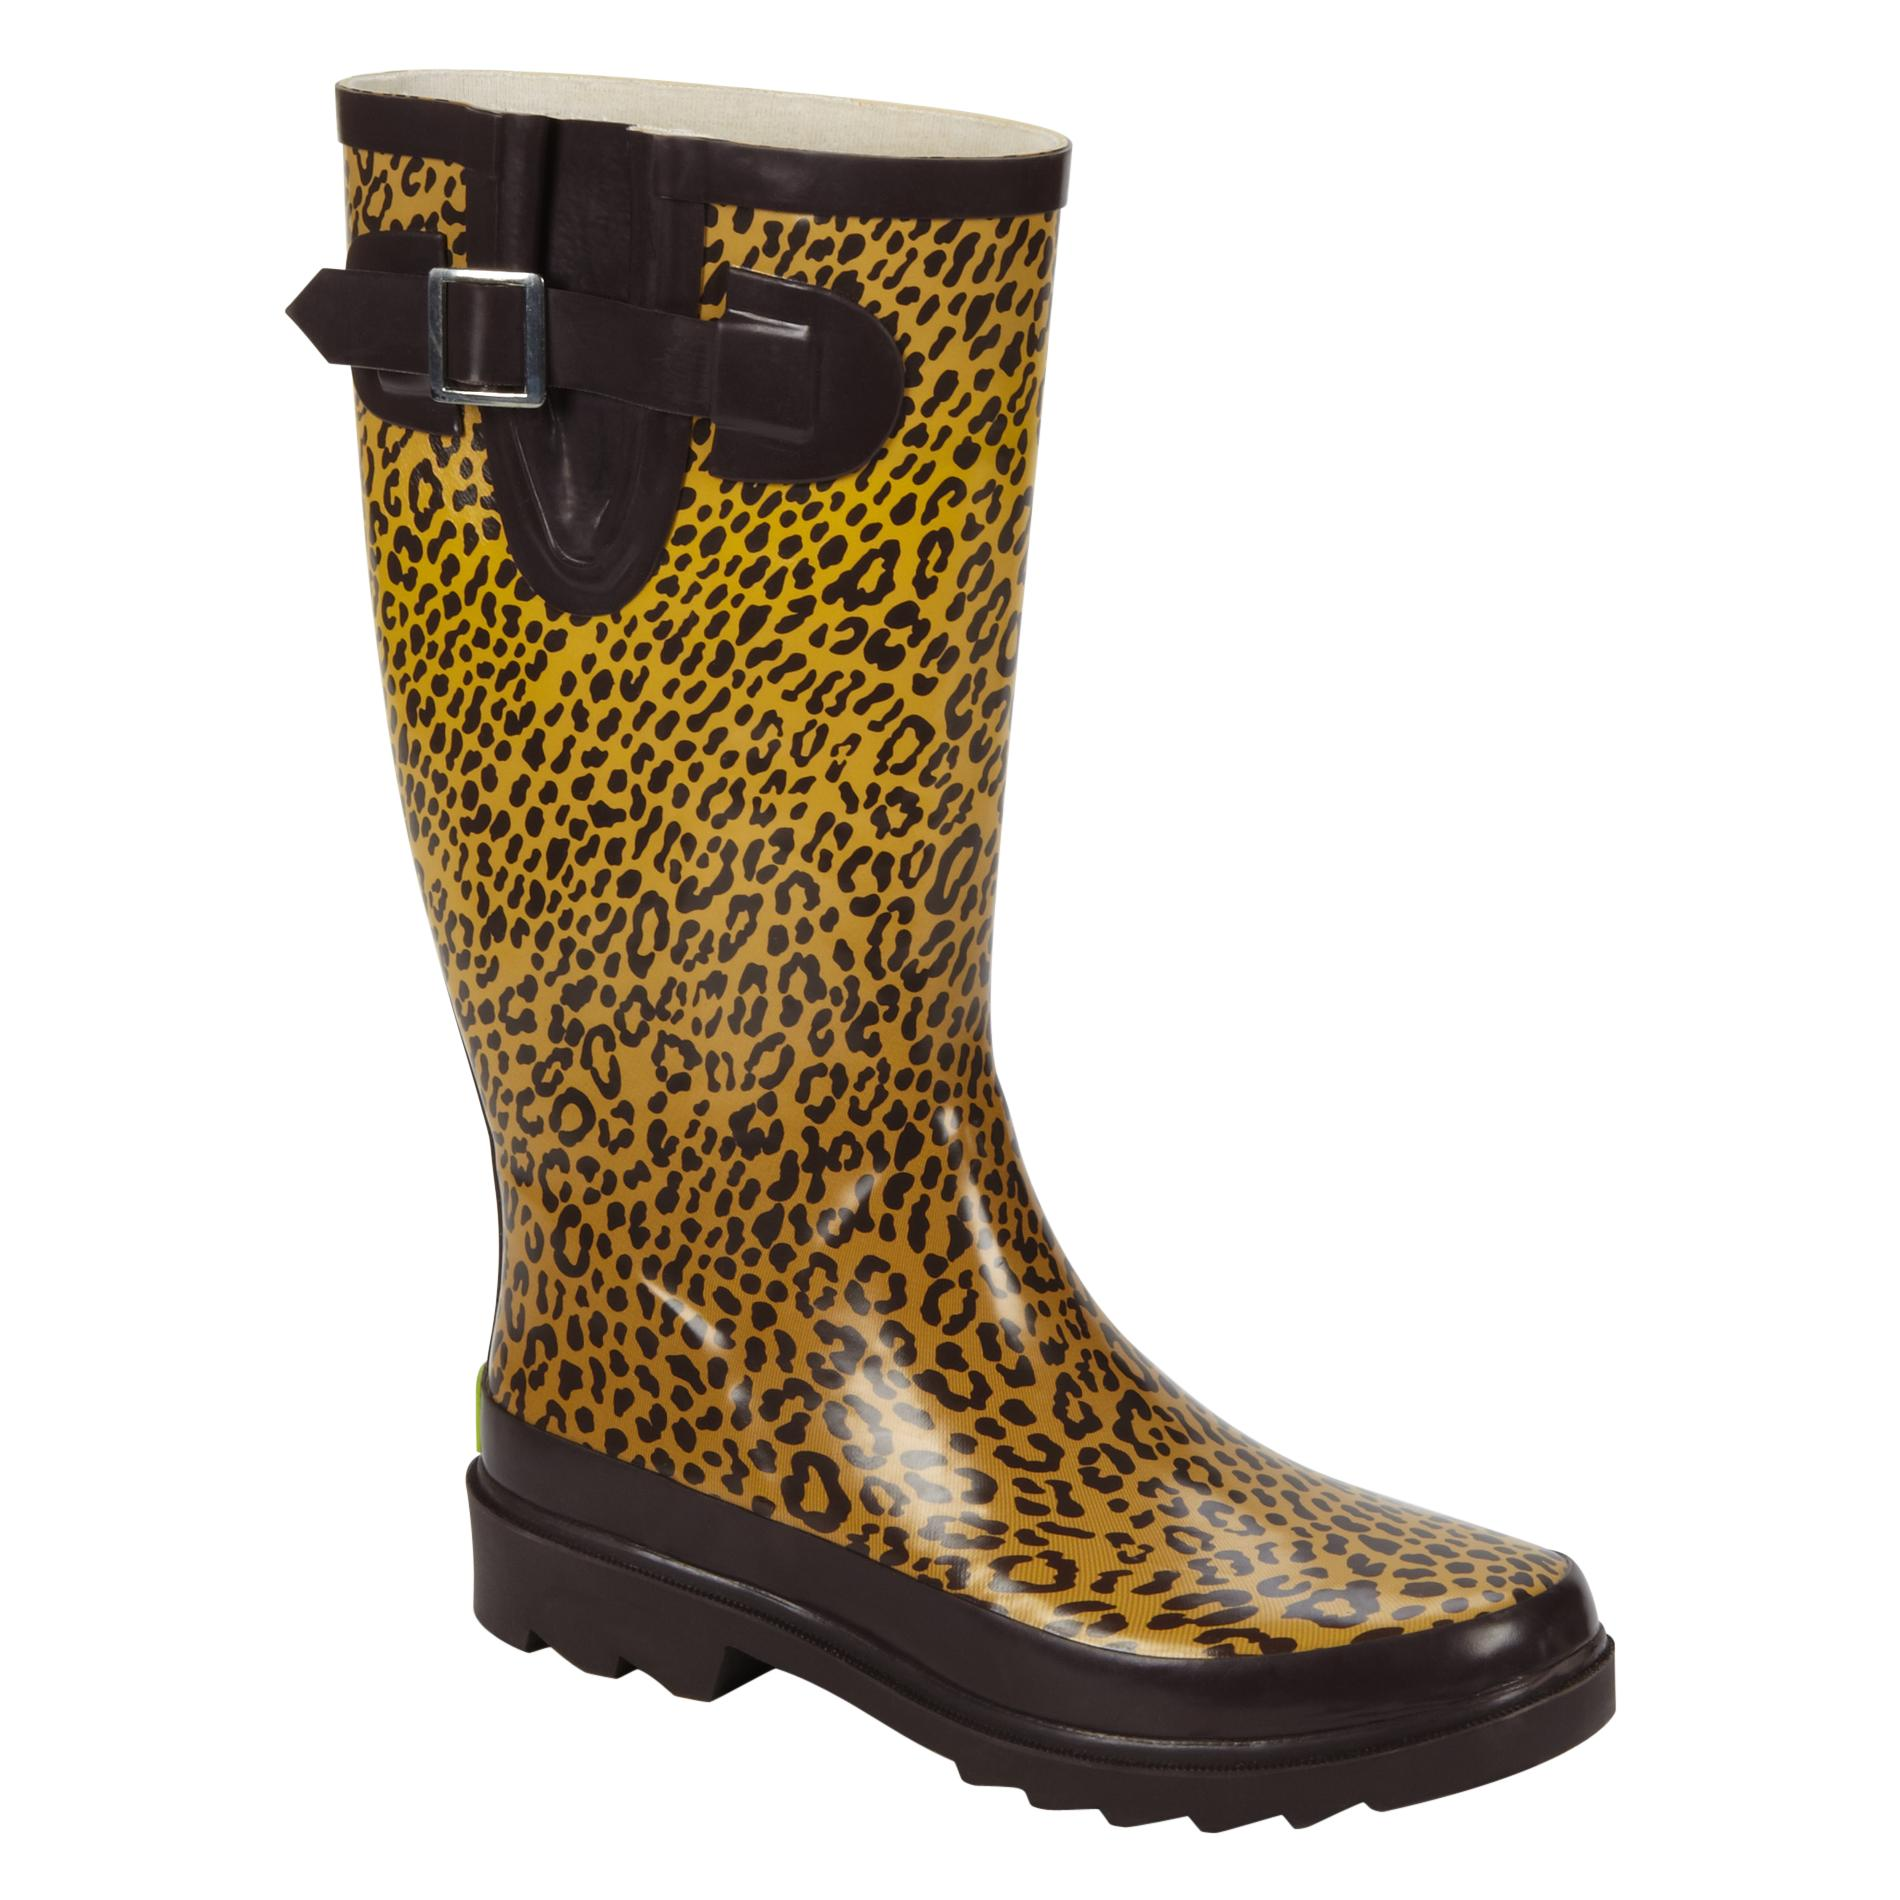 Western Chief  Women's Rain Boot - Tight - Leopard